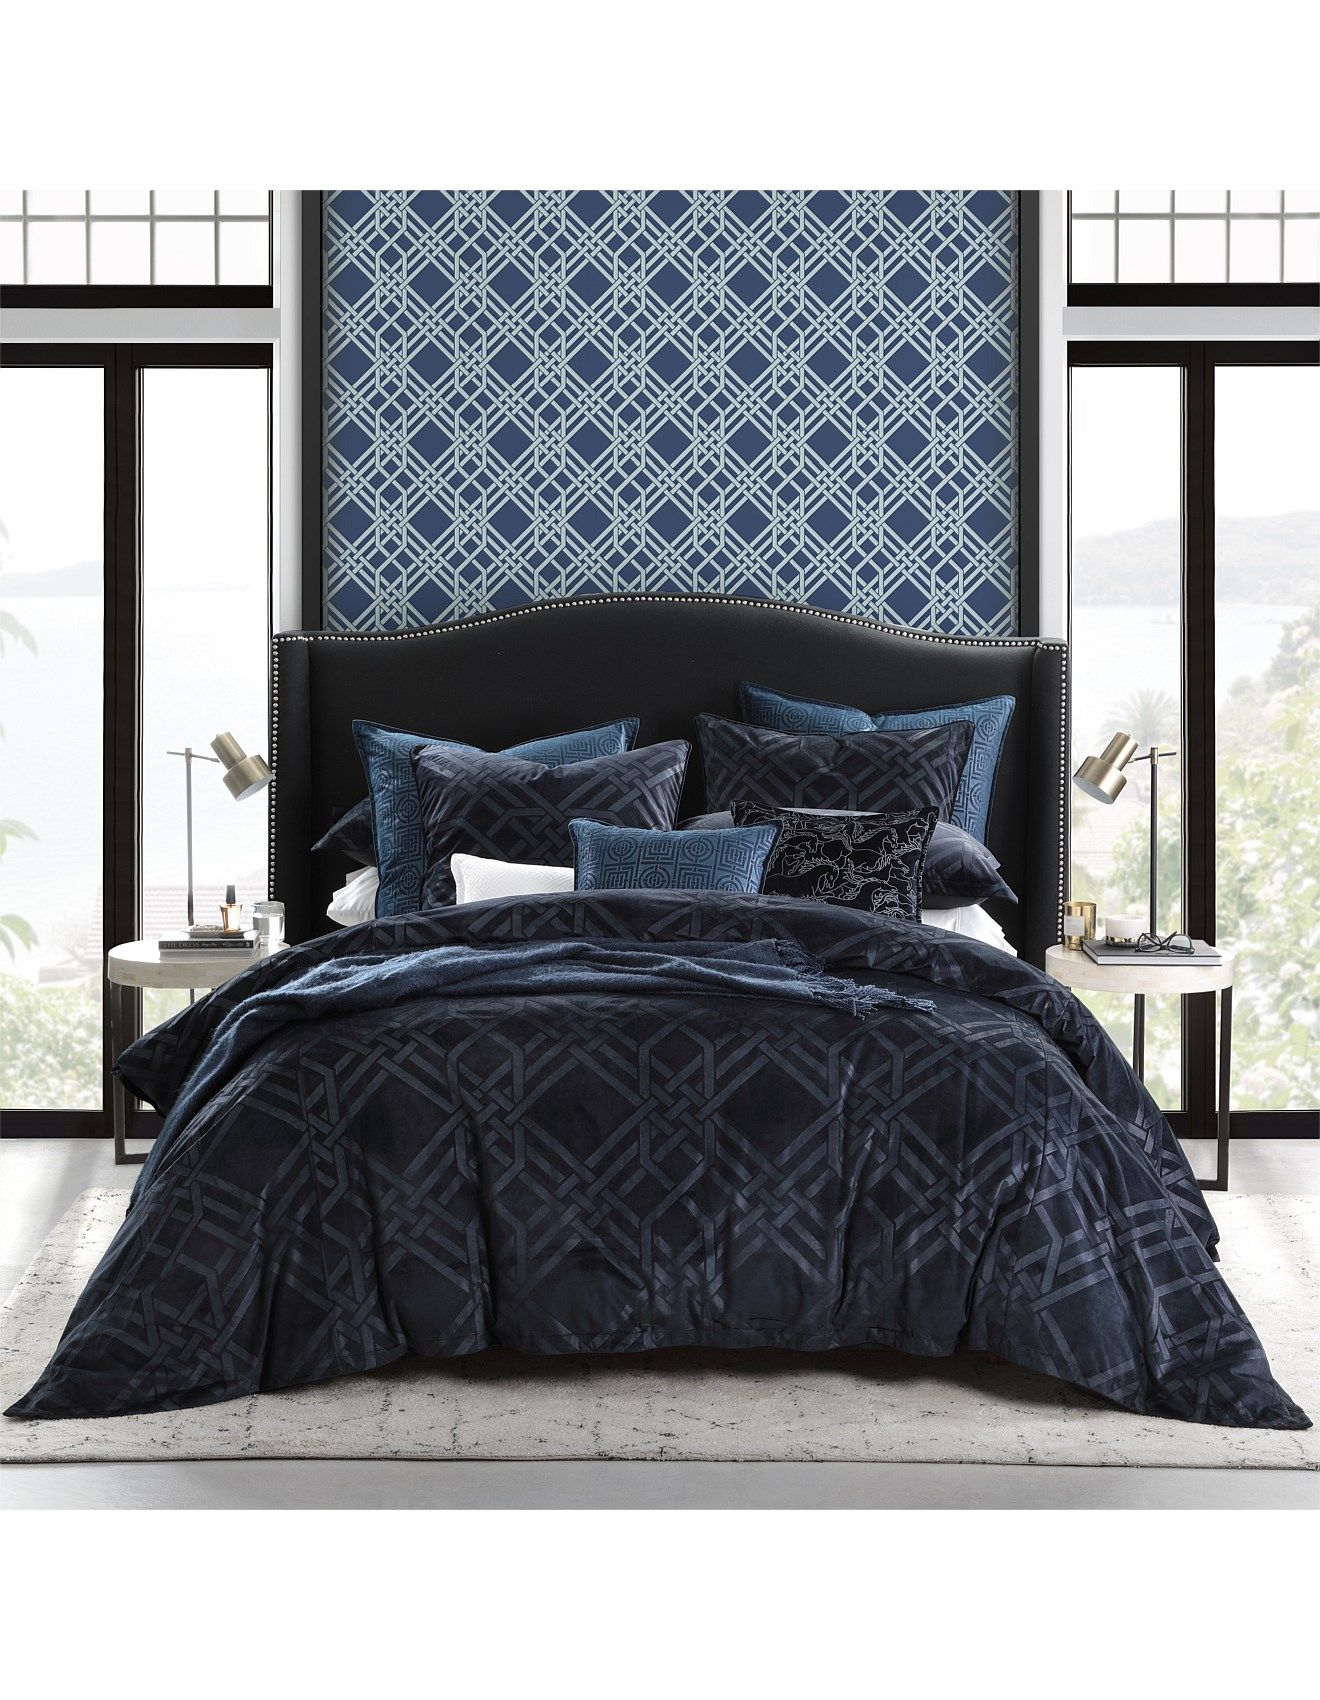 Pagoda Navy Quilt Cover Set King Bed In 2020 Quilt Cover Sets Quilt Cover White Linen Bedding